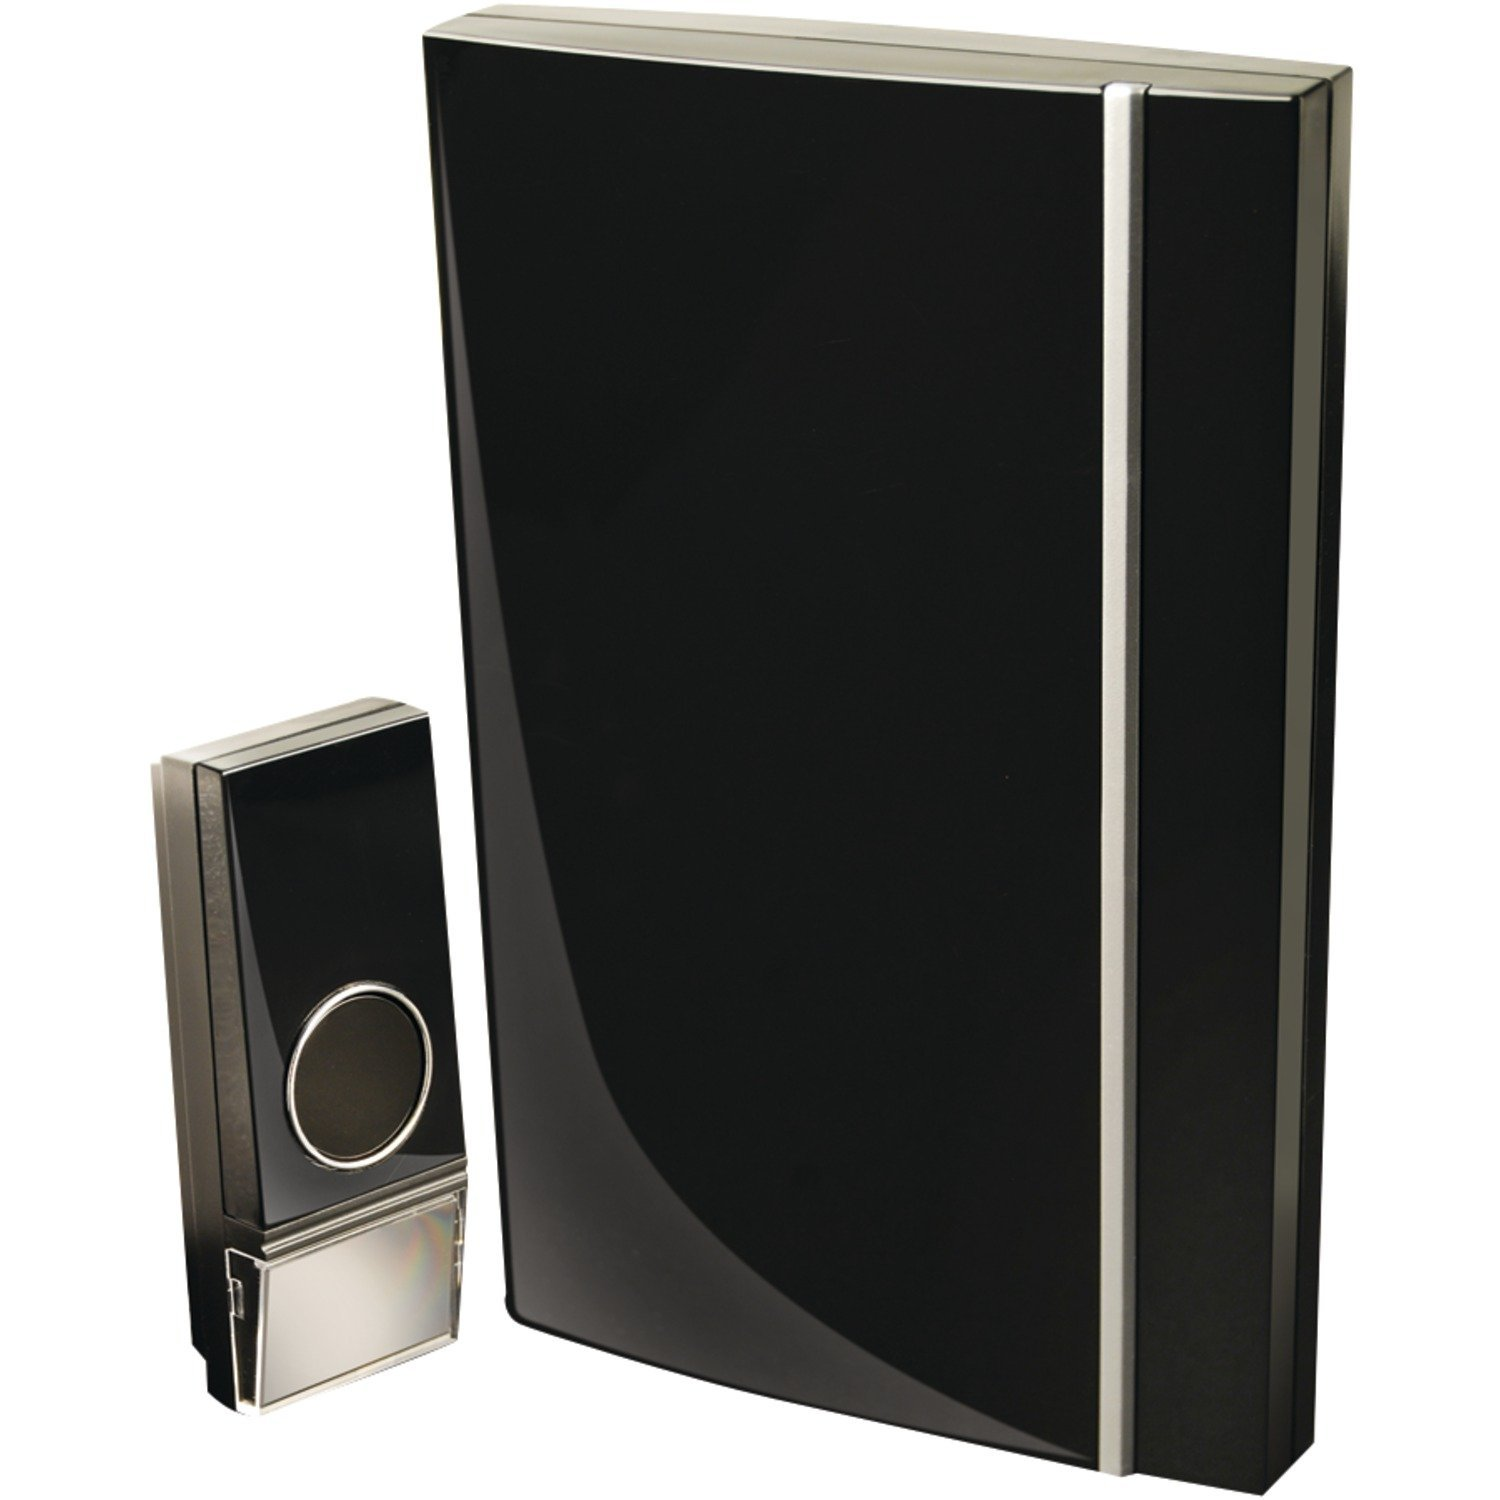 New swann wireless door chime with extra volume ebay for 1 by one door chime